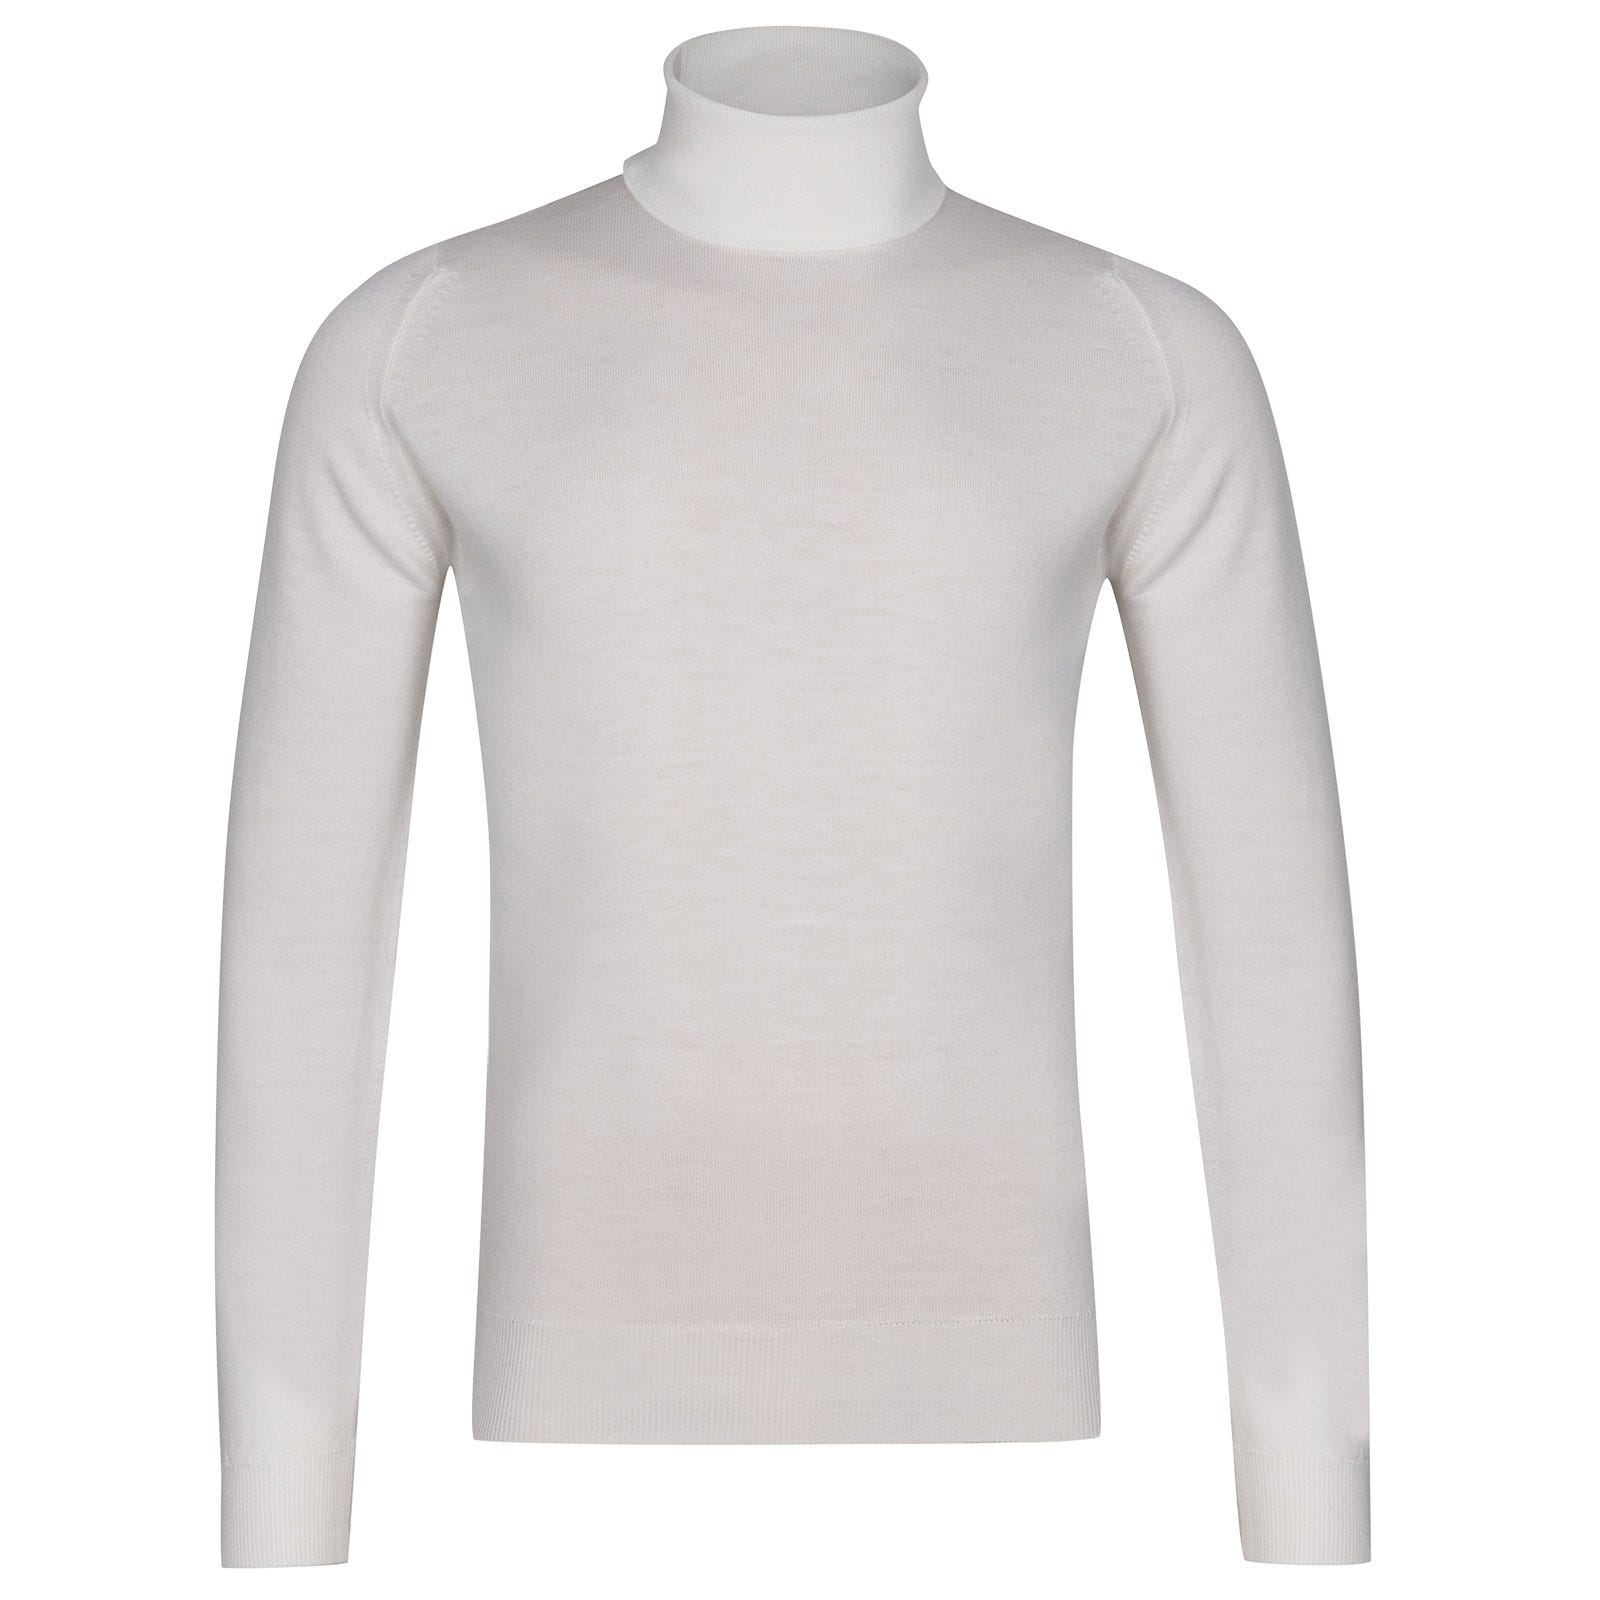 John Smedley Connell Merino Wool Pullover in Snow White-XL